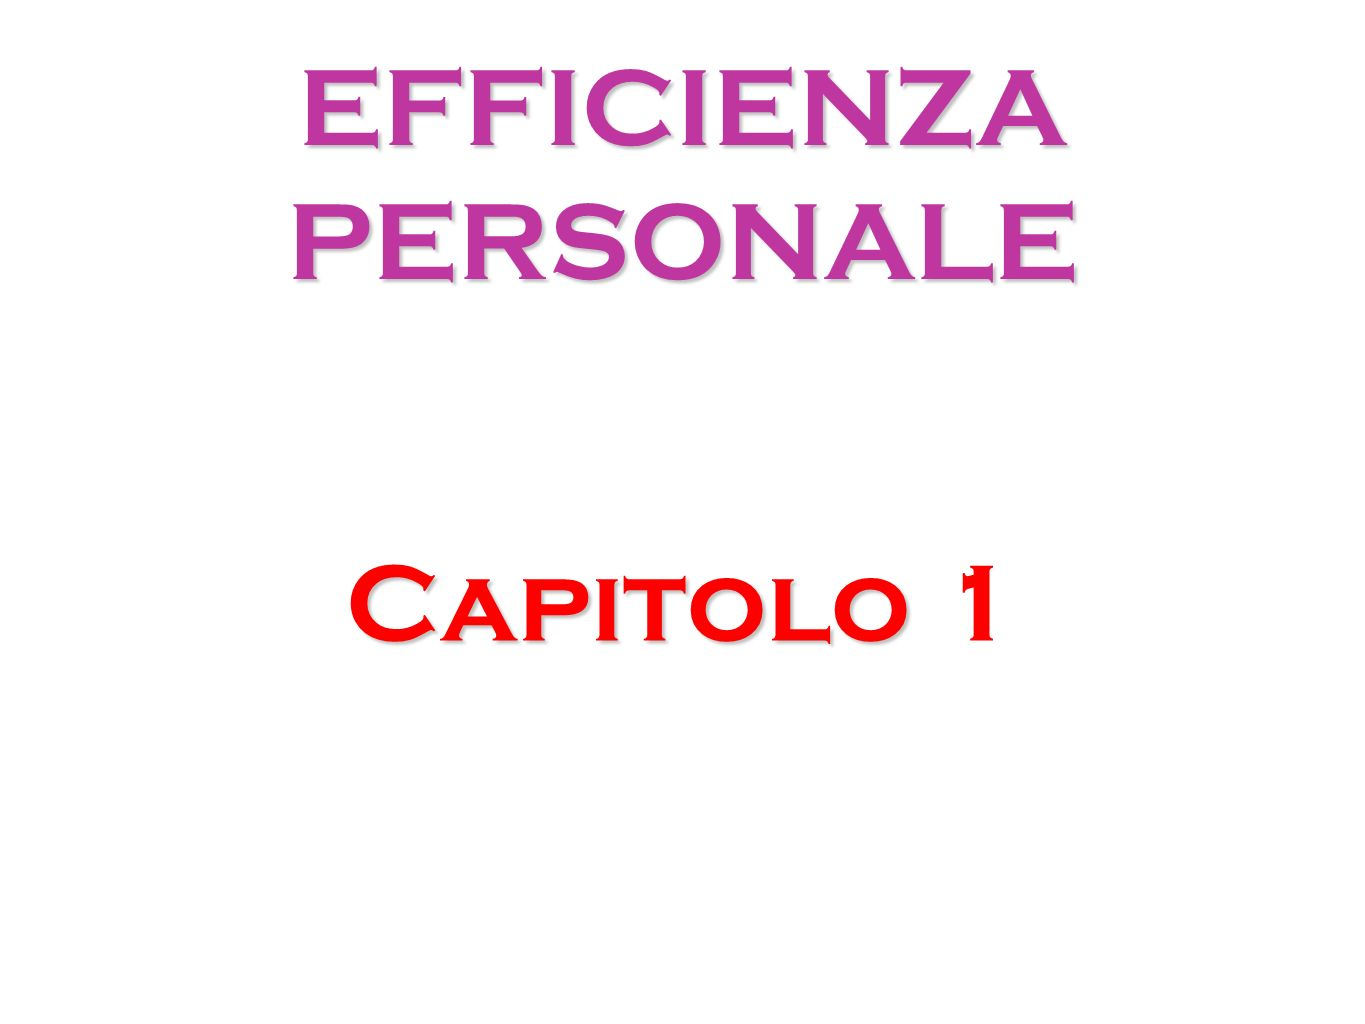 EFFICIENZA PERSONALE Capitolo 1